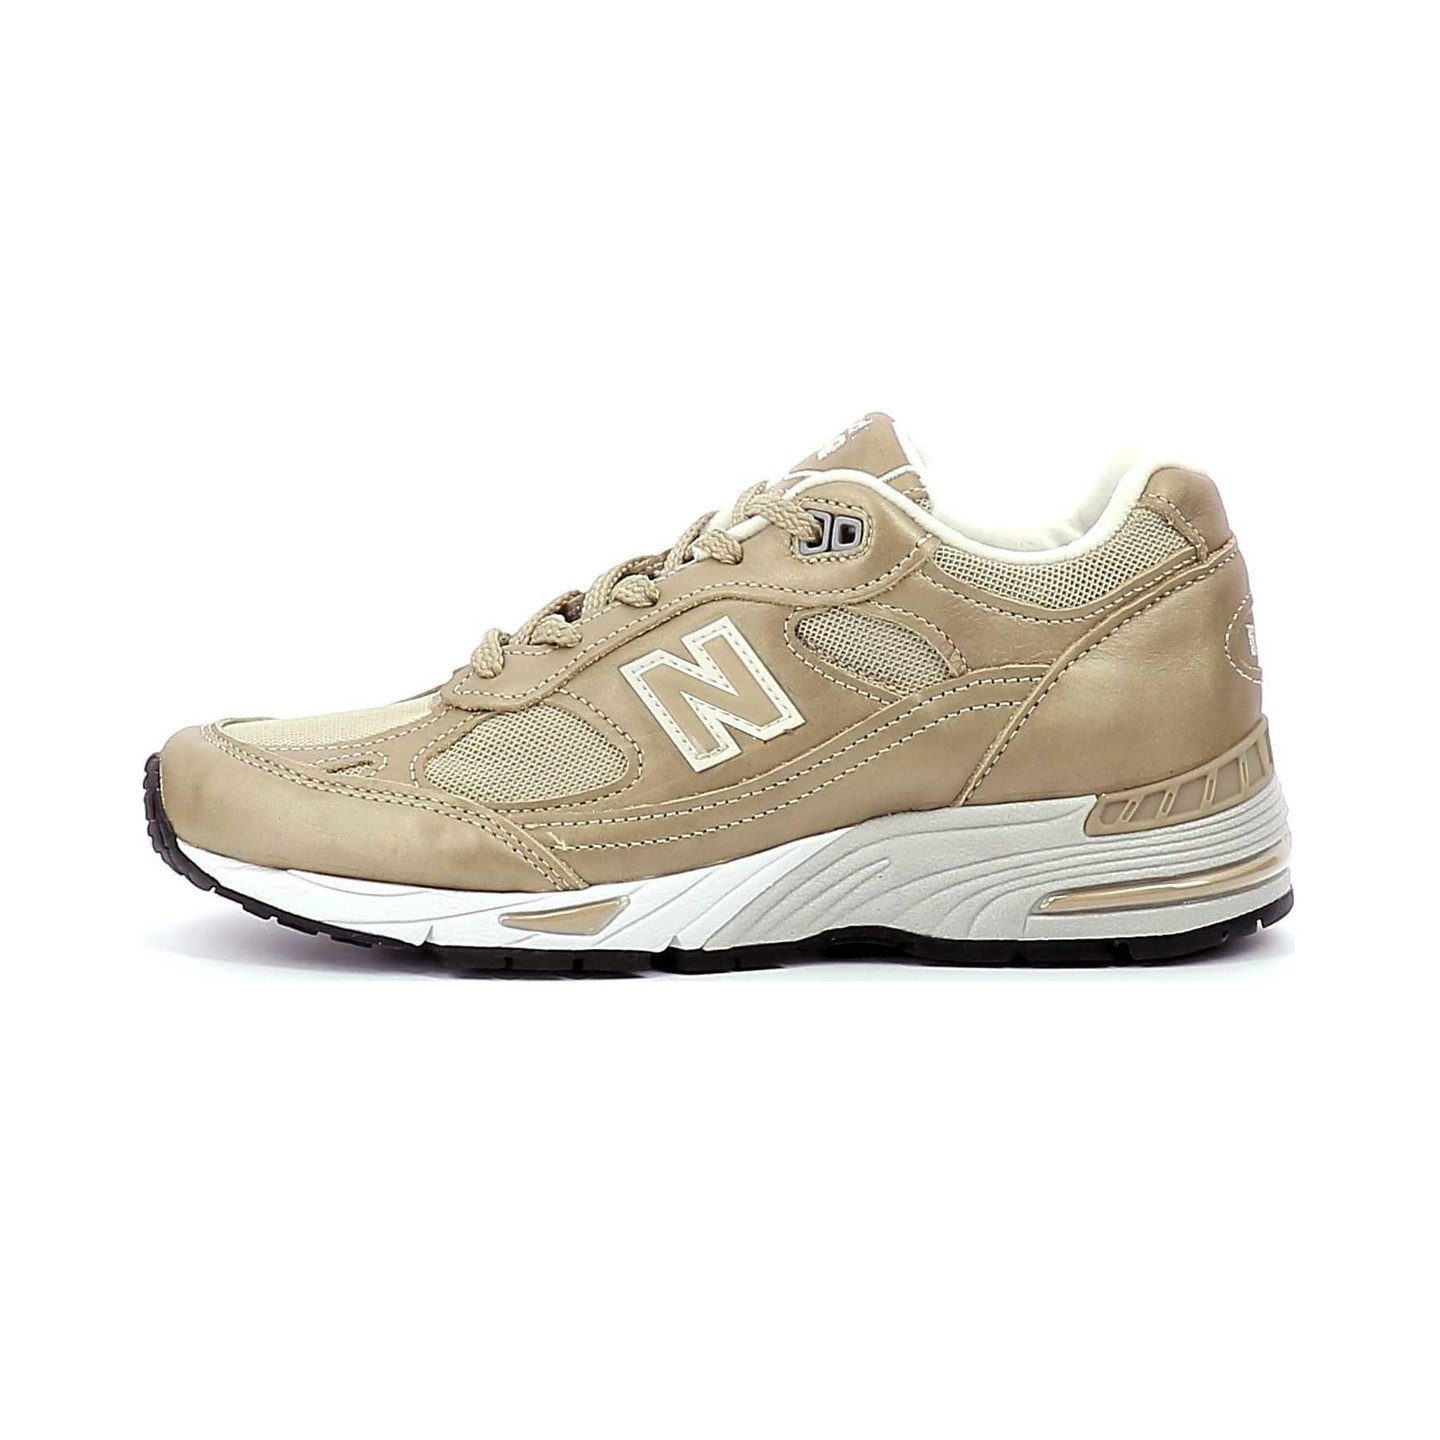 New Balance W991 SBL - Made in UK Metallic Gold W991SBL